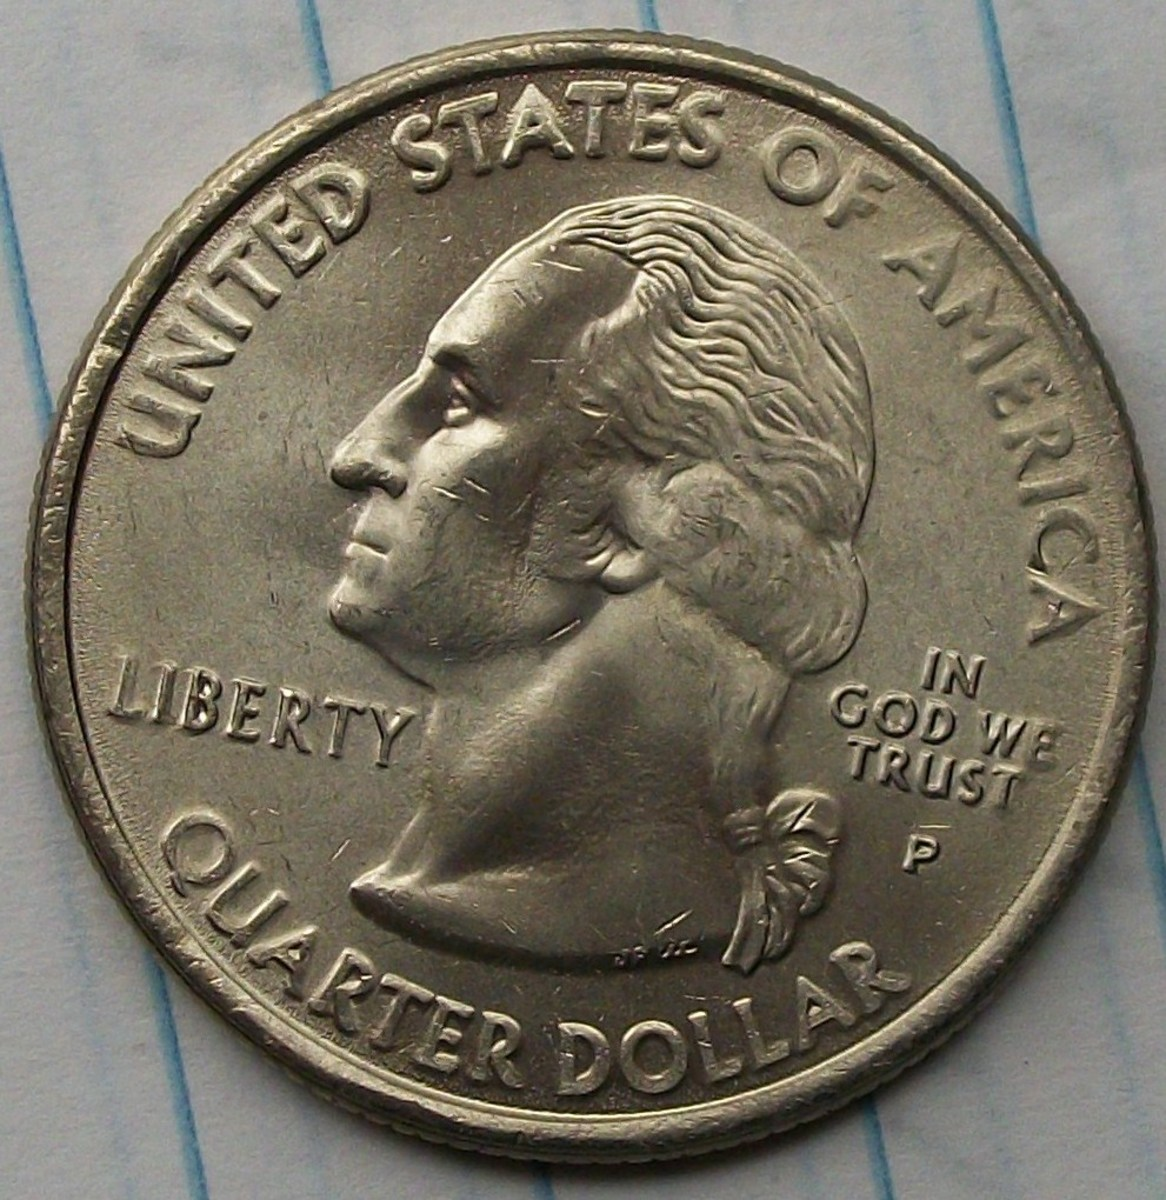 obverse of the 2008P South Carolina Statehood Quarter